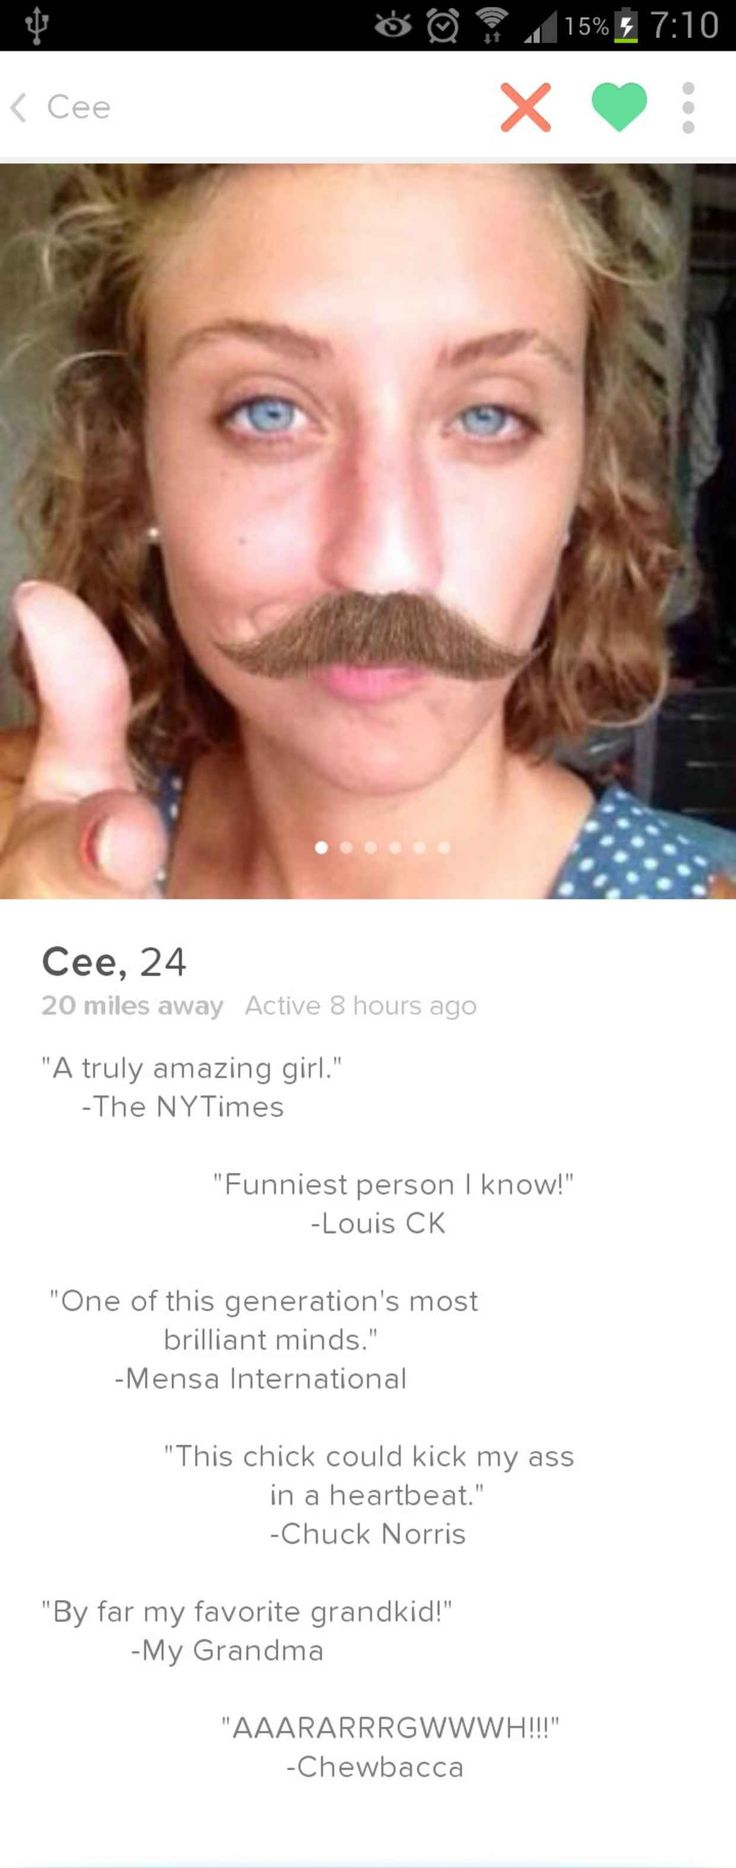 23 Hilarious Bios You Would Only Ever Find on Tinder - BlazePress